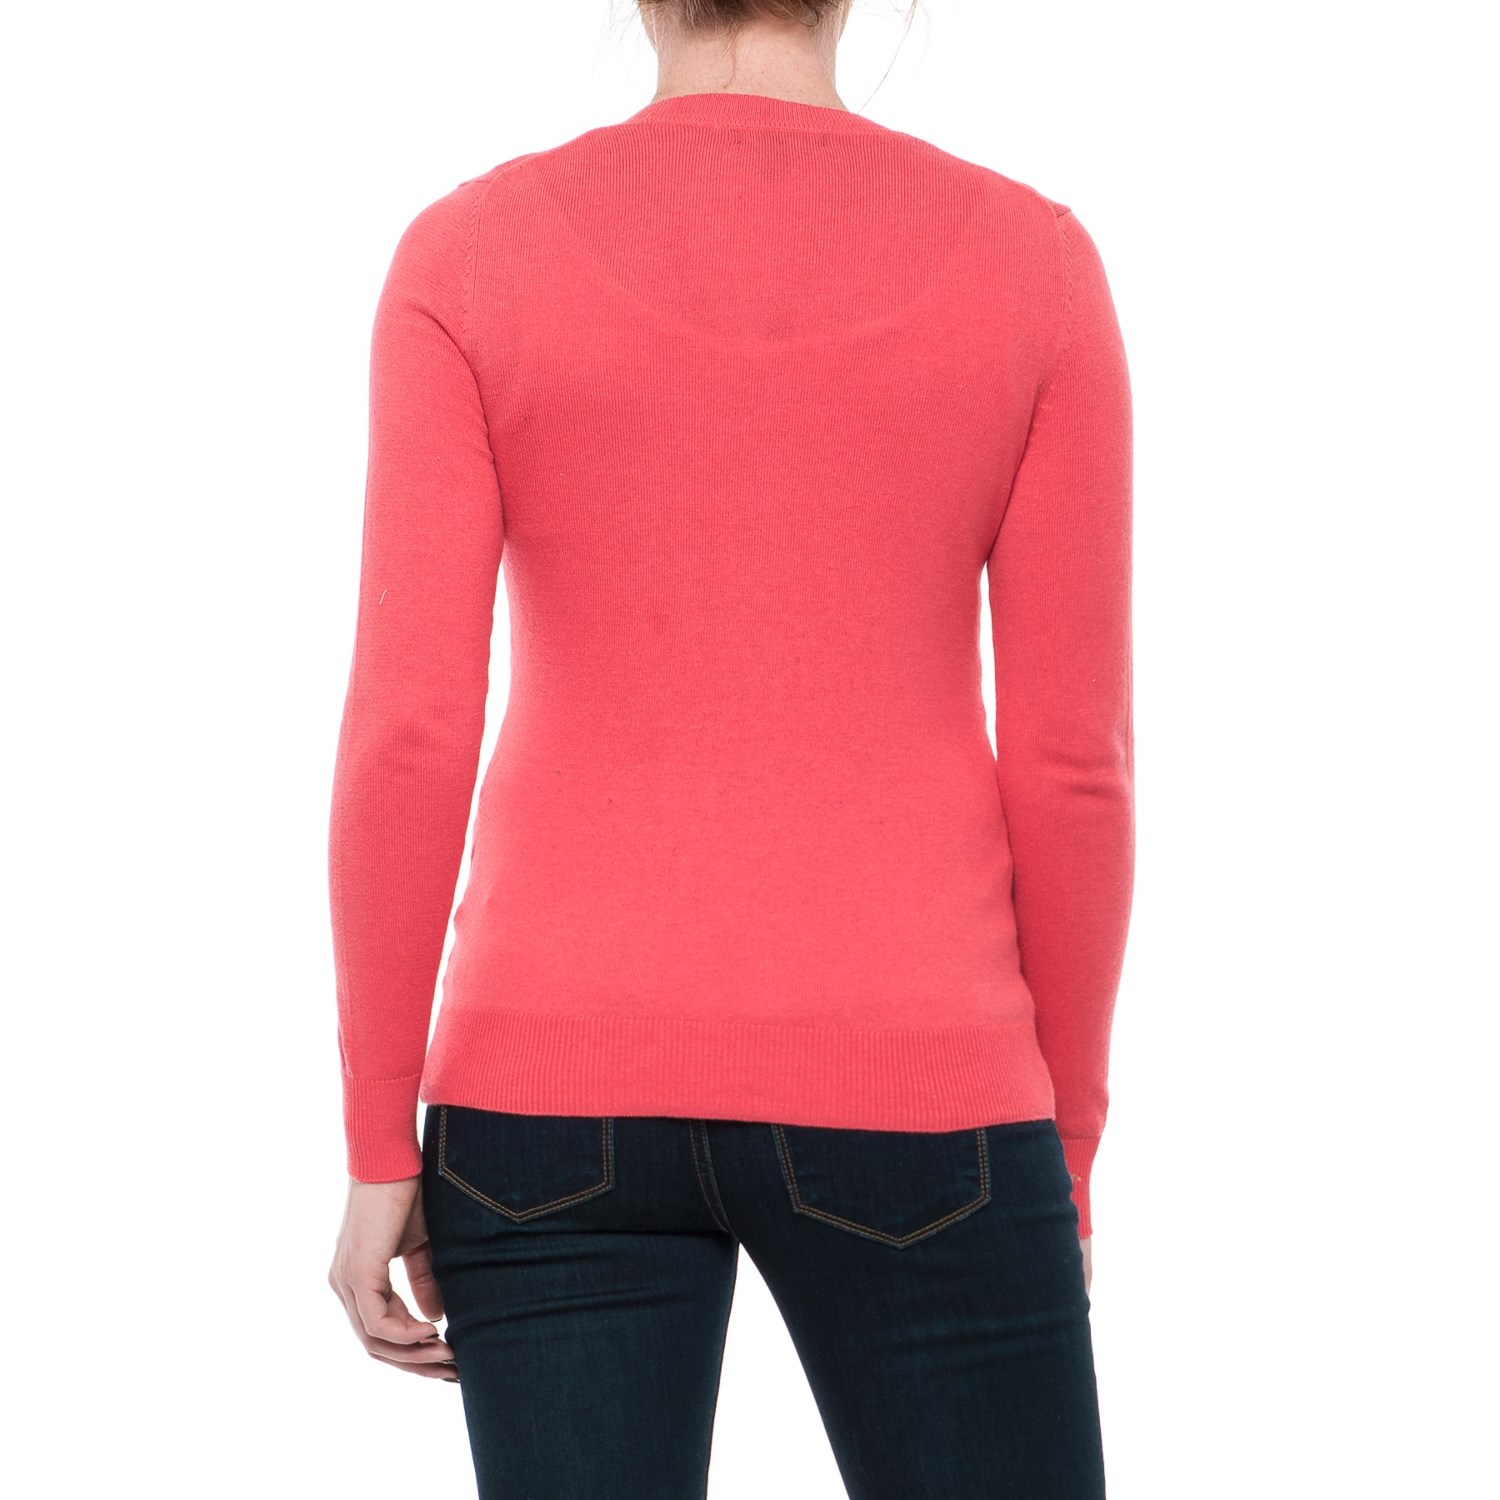 Crew Neck Cardigan Sweater (For Women) - Save 58%